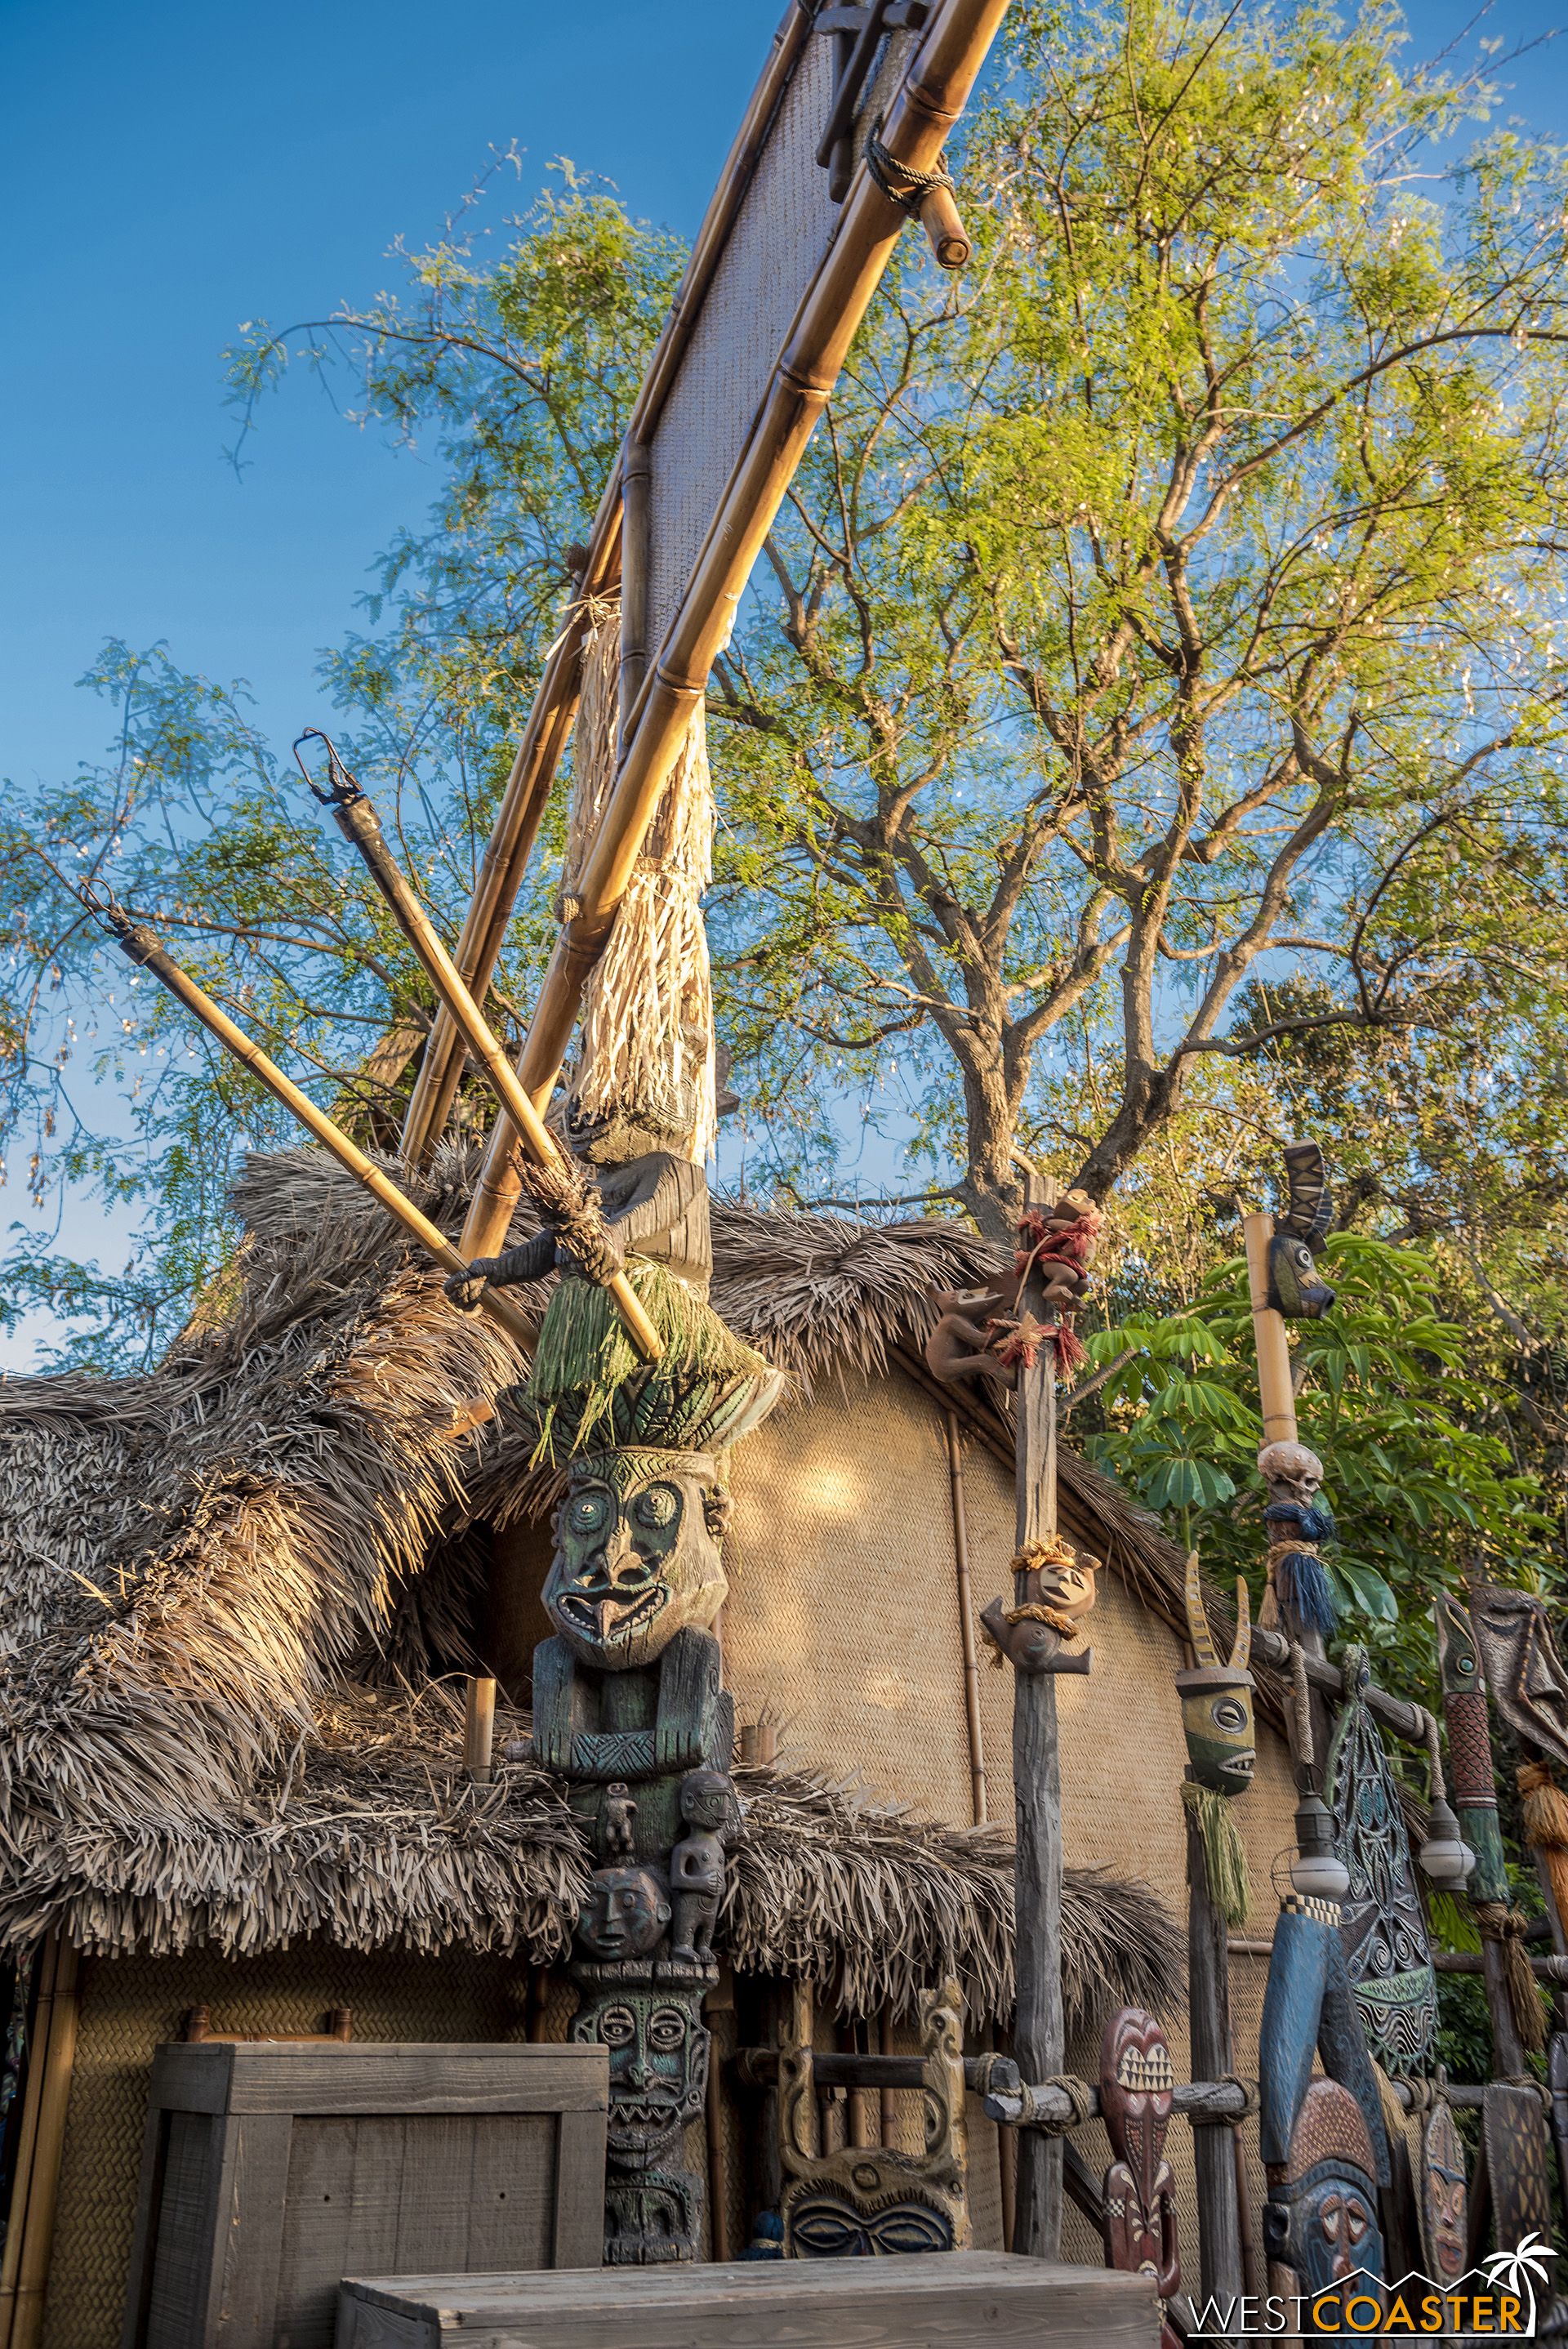 The sign post is integrated into the tiki statues on the Tiki Room side.